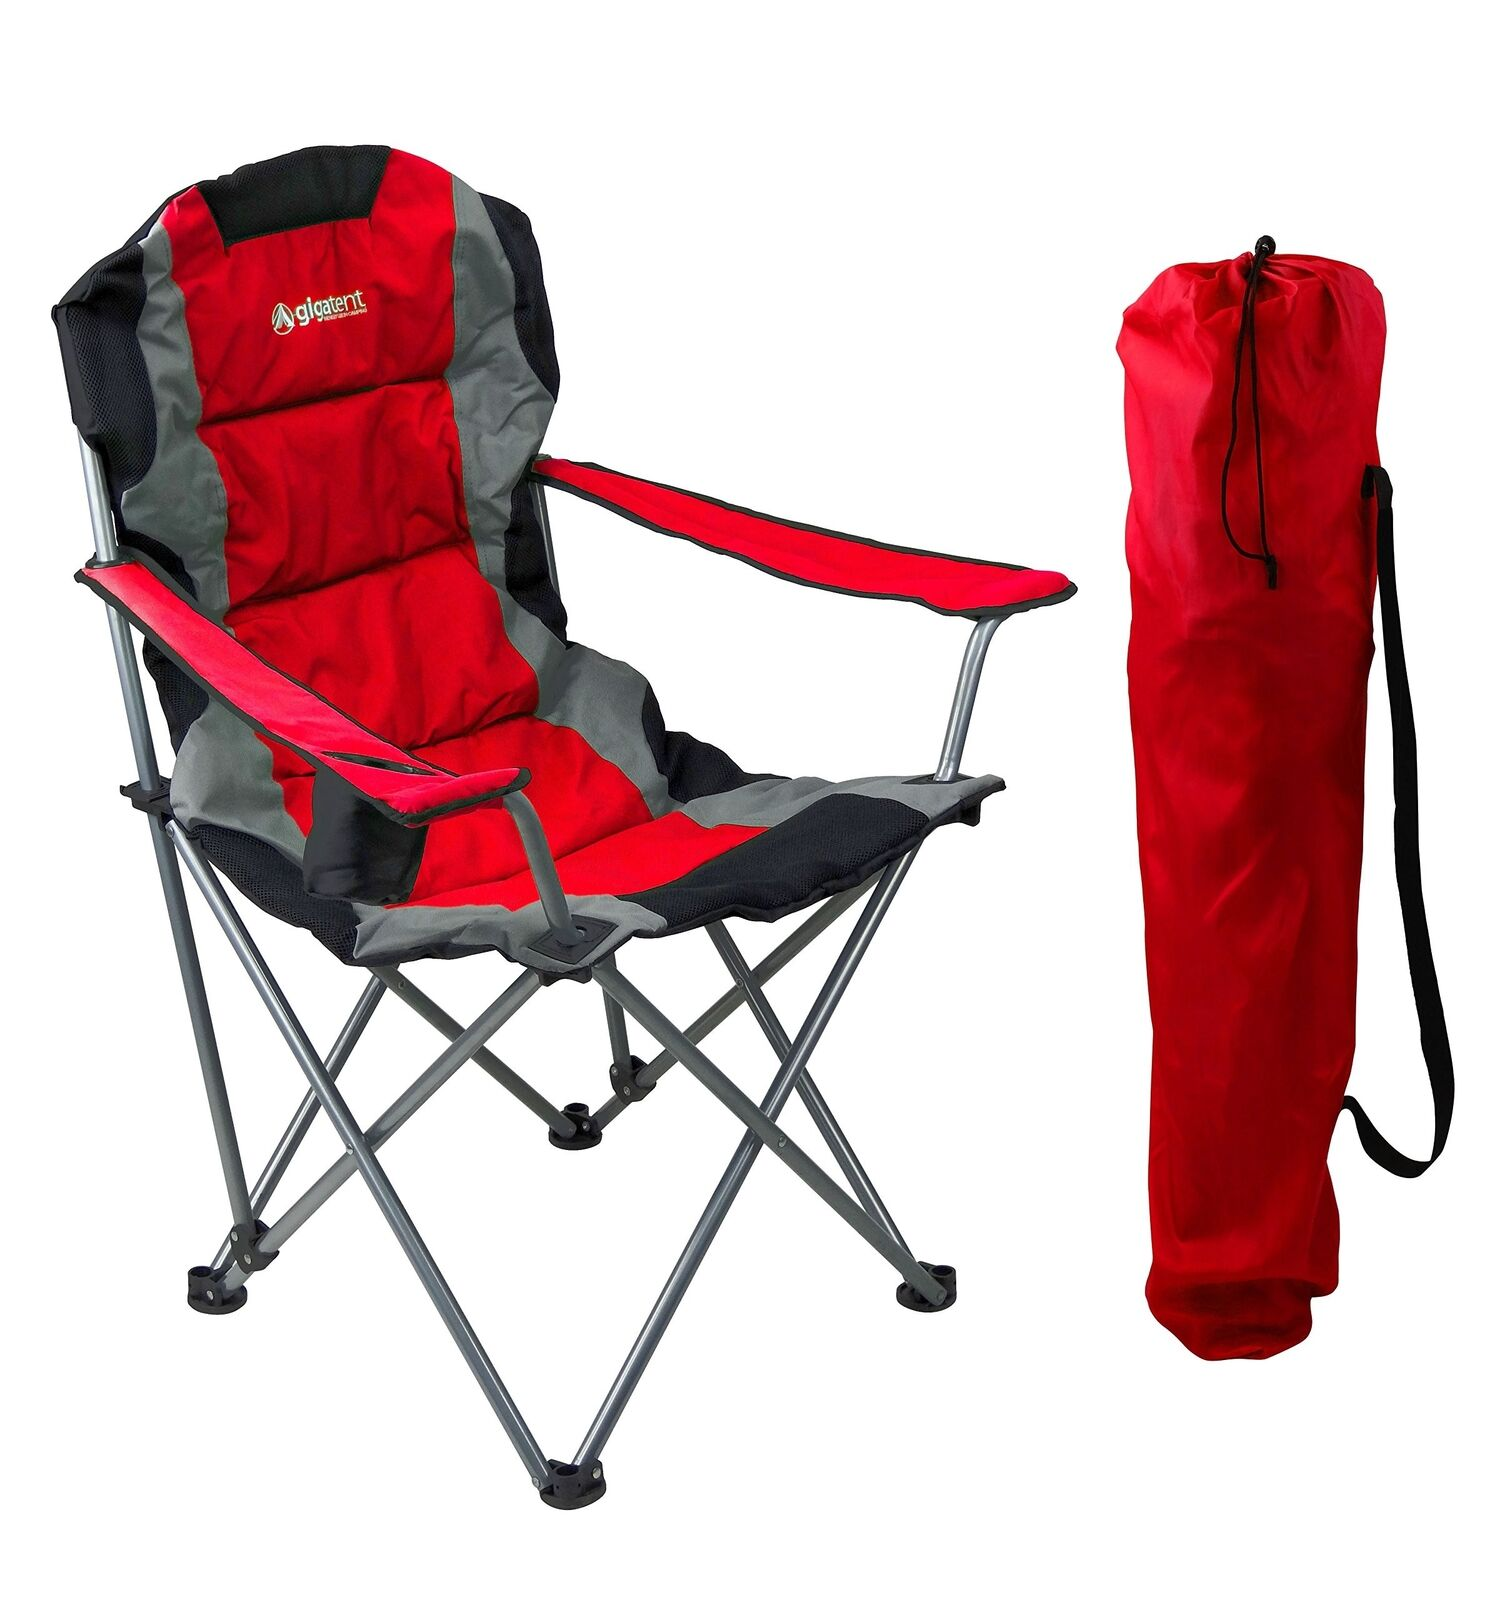 GigaTent Red Folding Camping Chair  – Ultra Lightweight Collapsible Quad Padde...  online cheap